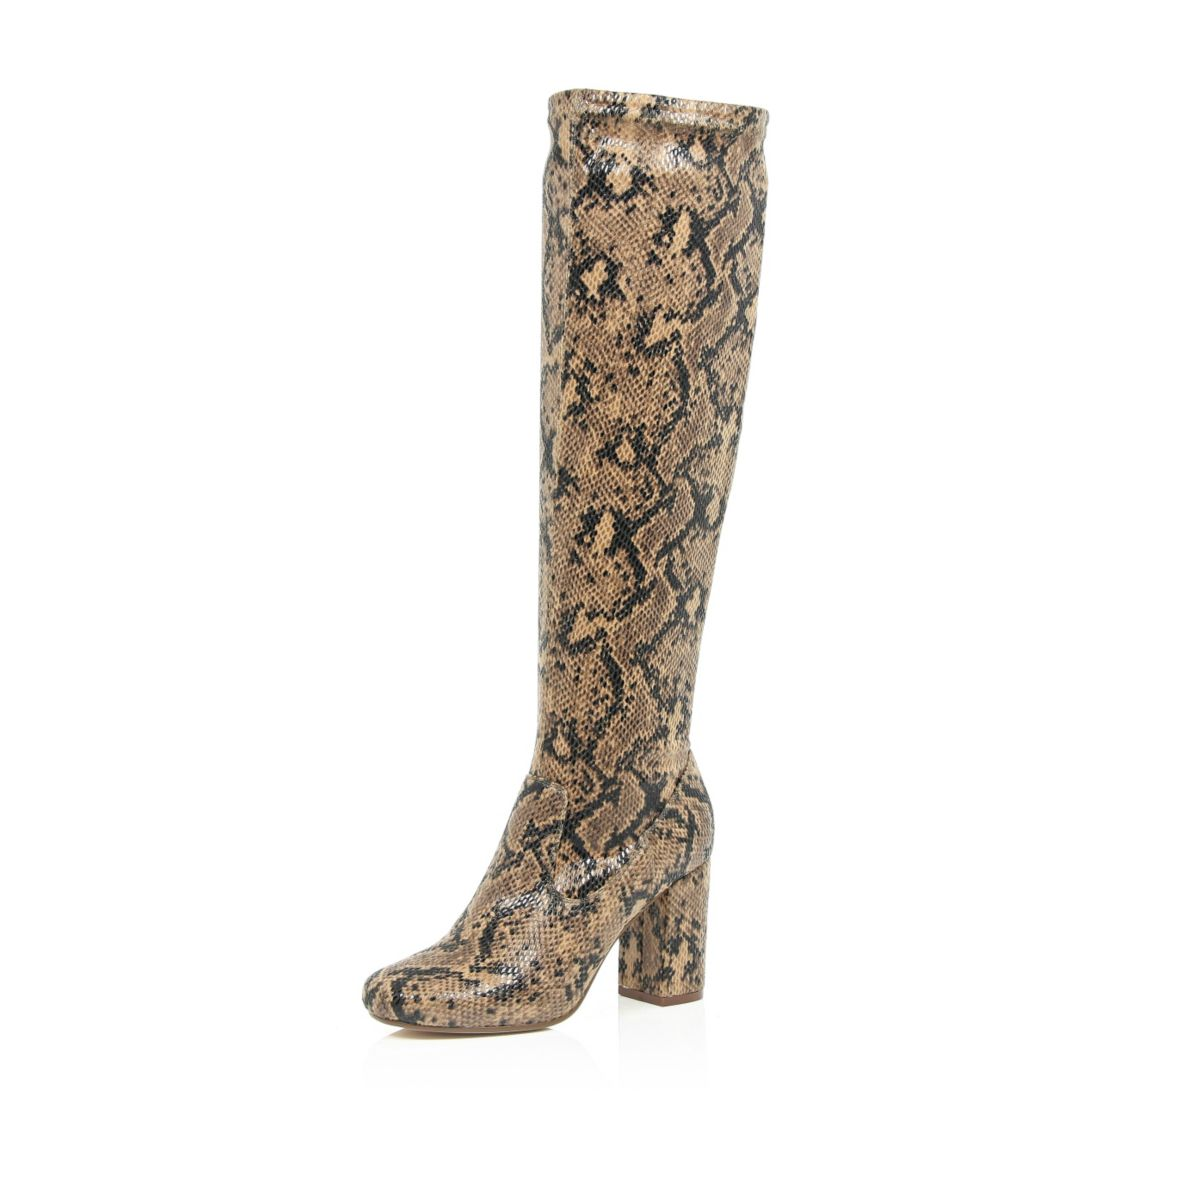 Brown snake print knee high boots